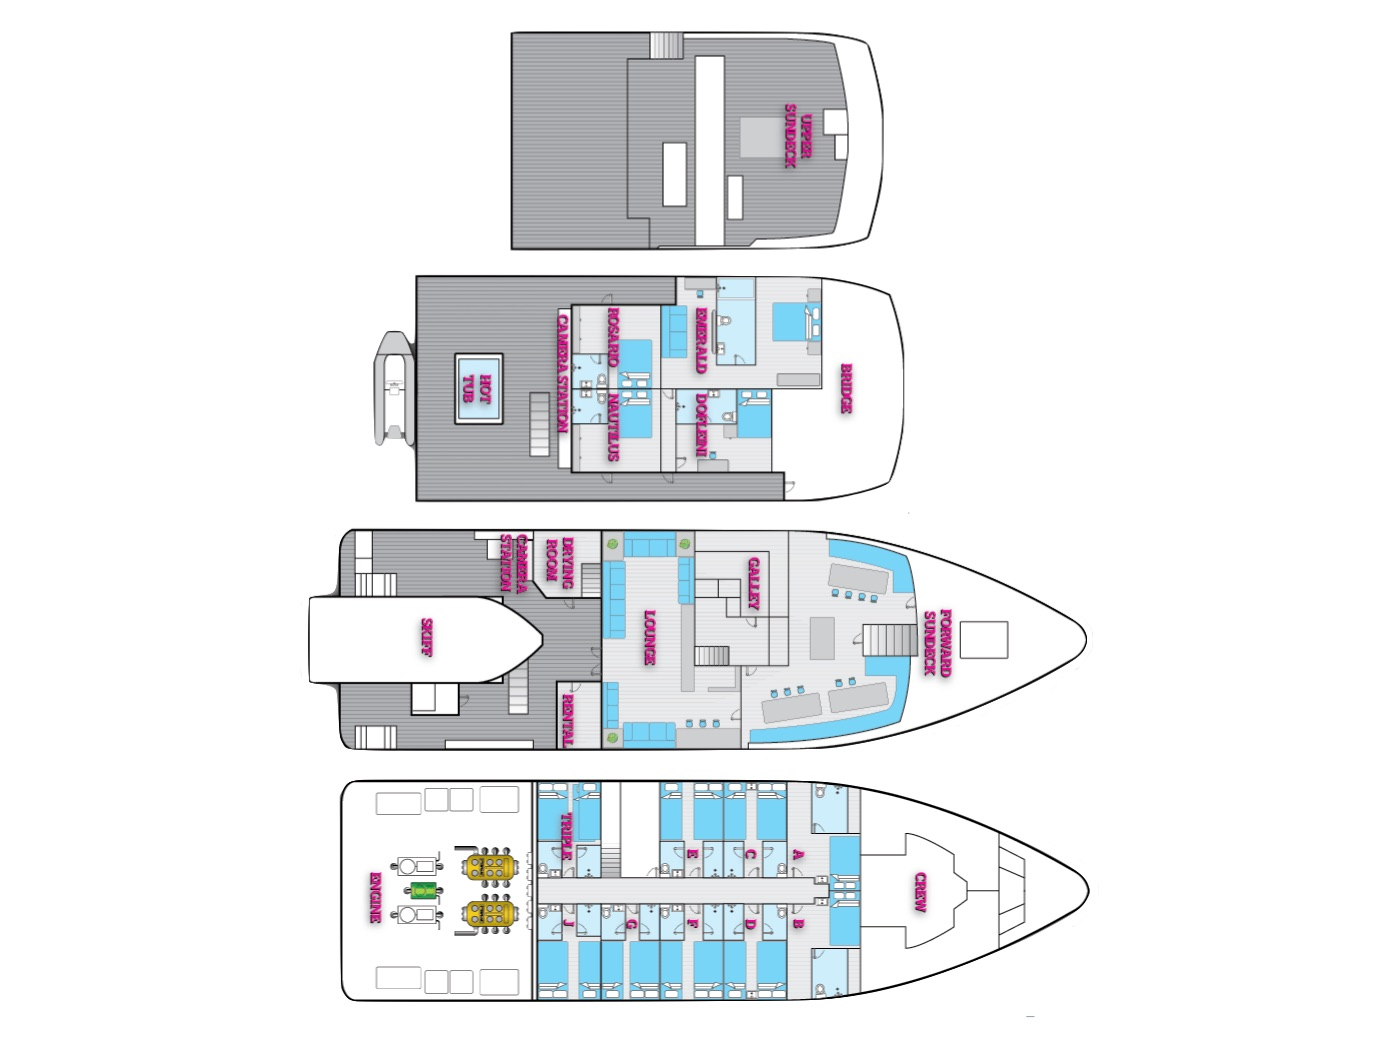 Nautilus Explorer Deck Plan floorplan